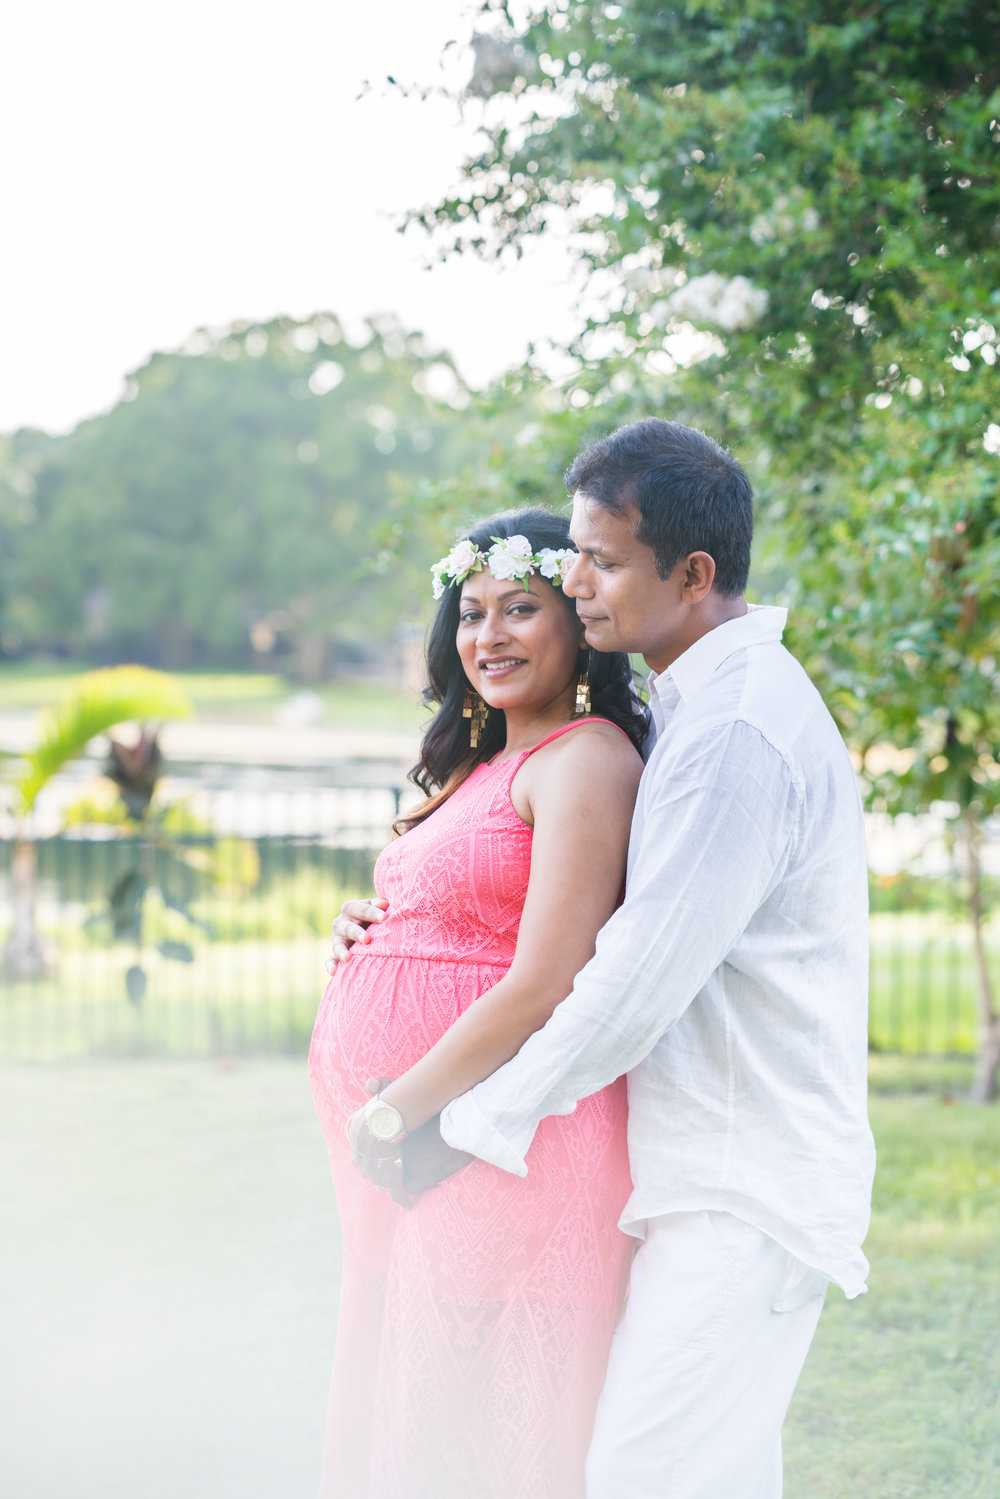 Tampa Maternity session, Tampa photographer, Tampa lifestyle maternity session